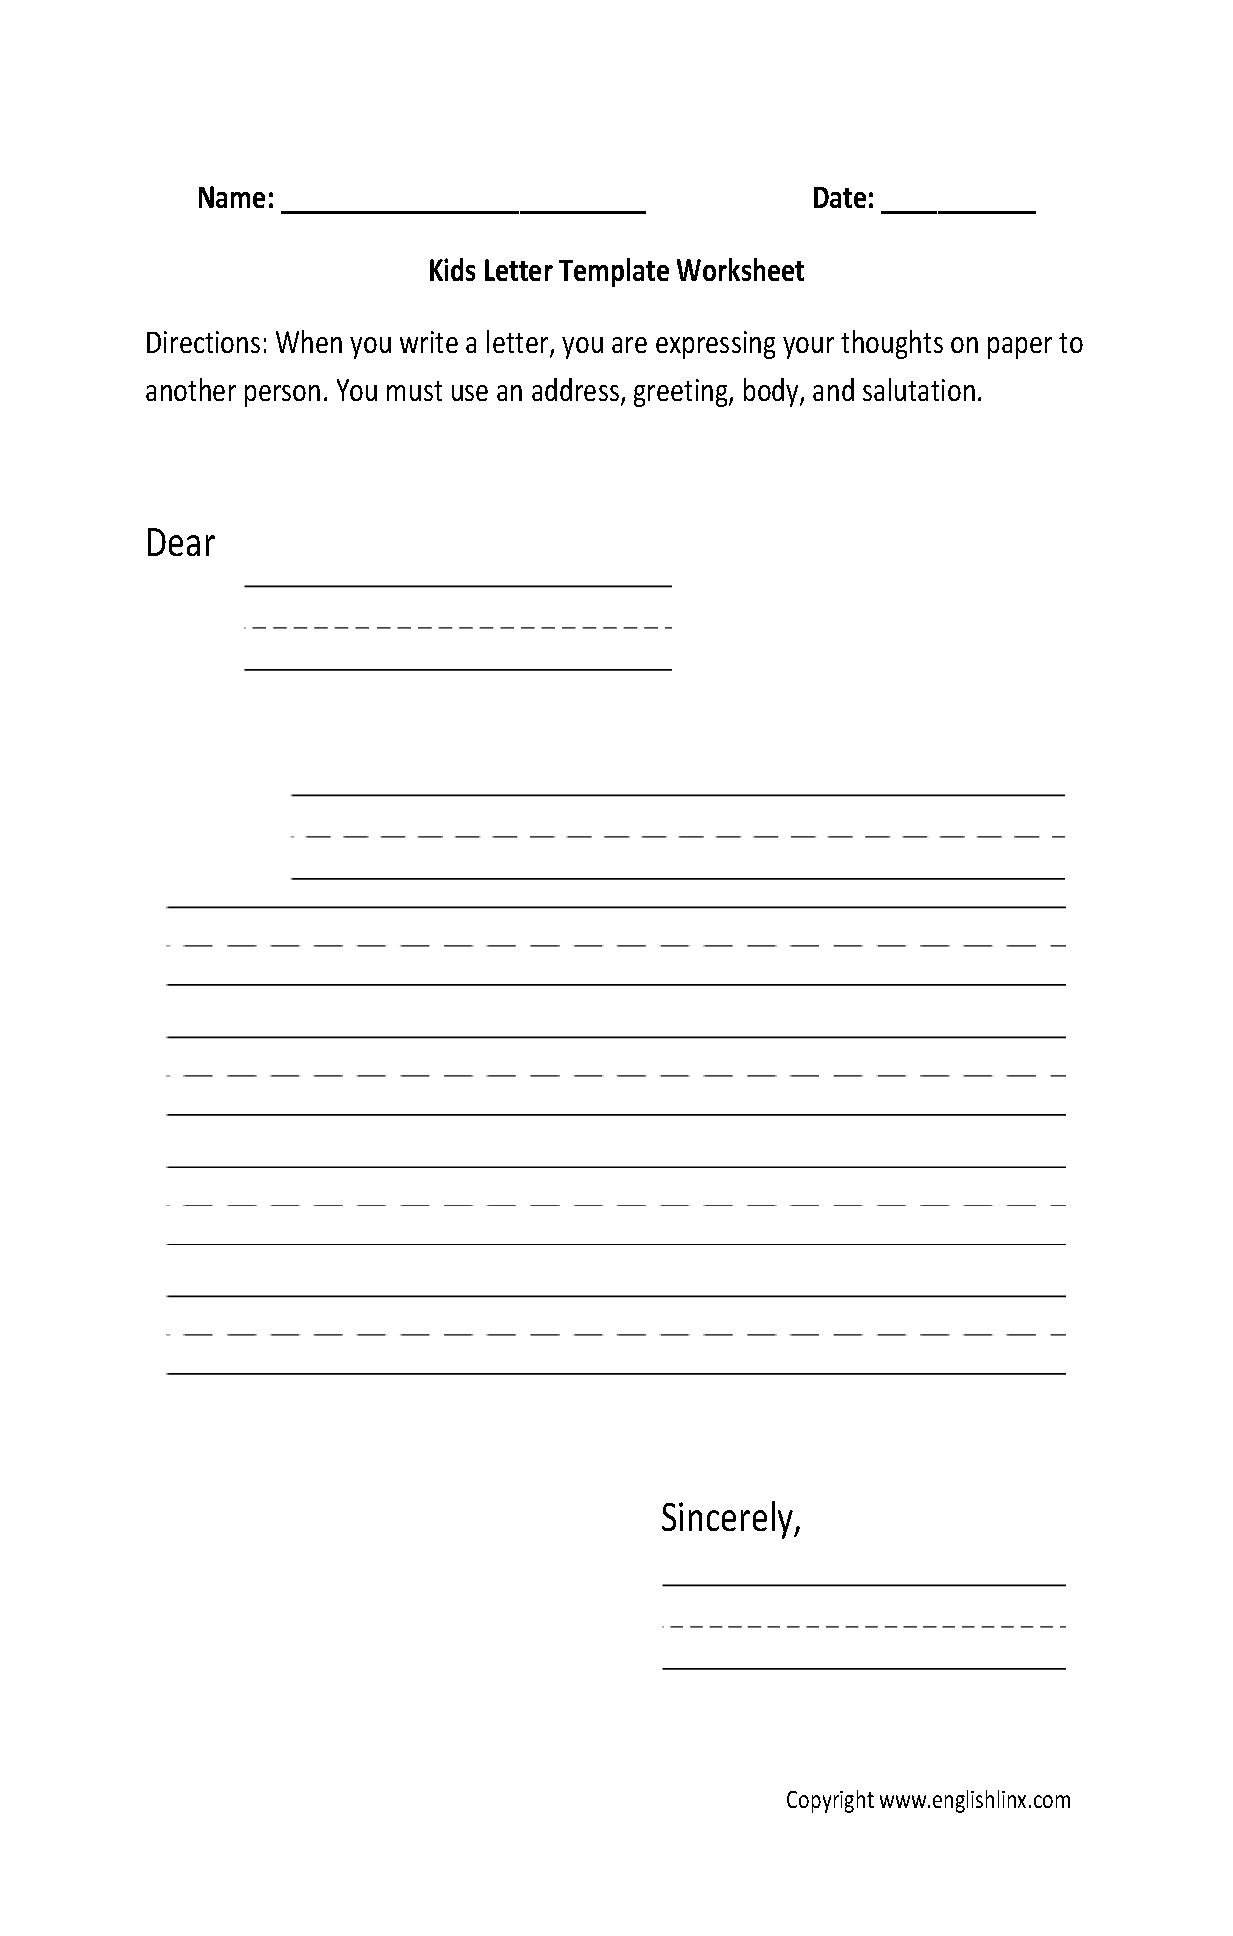 Writing Worksheets | Letter Writing Worksheets - Free Printable Letter Writing Worksheets